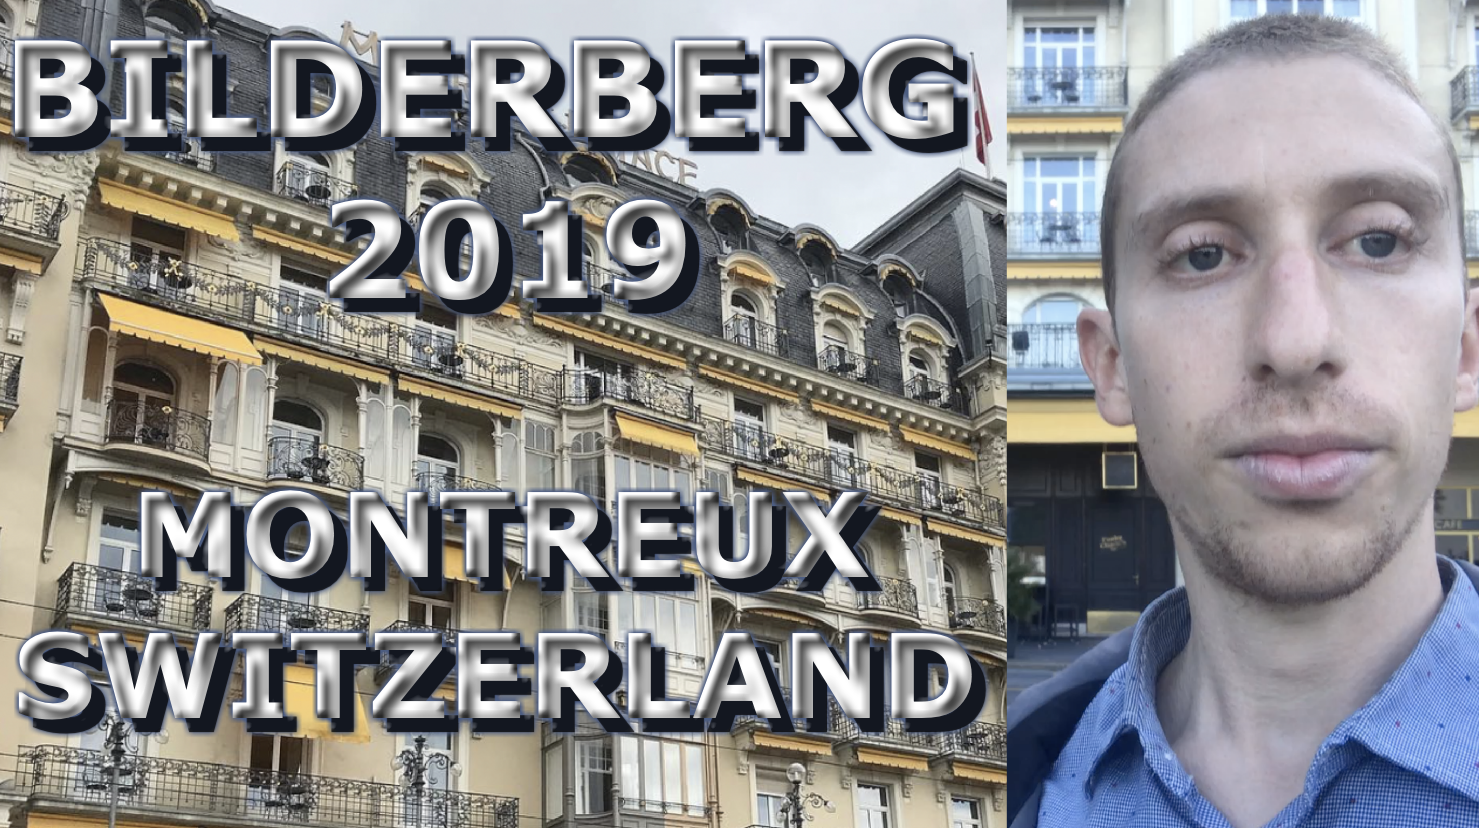 Bilderberg 2019 Coverage From Montreux, Switzerland